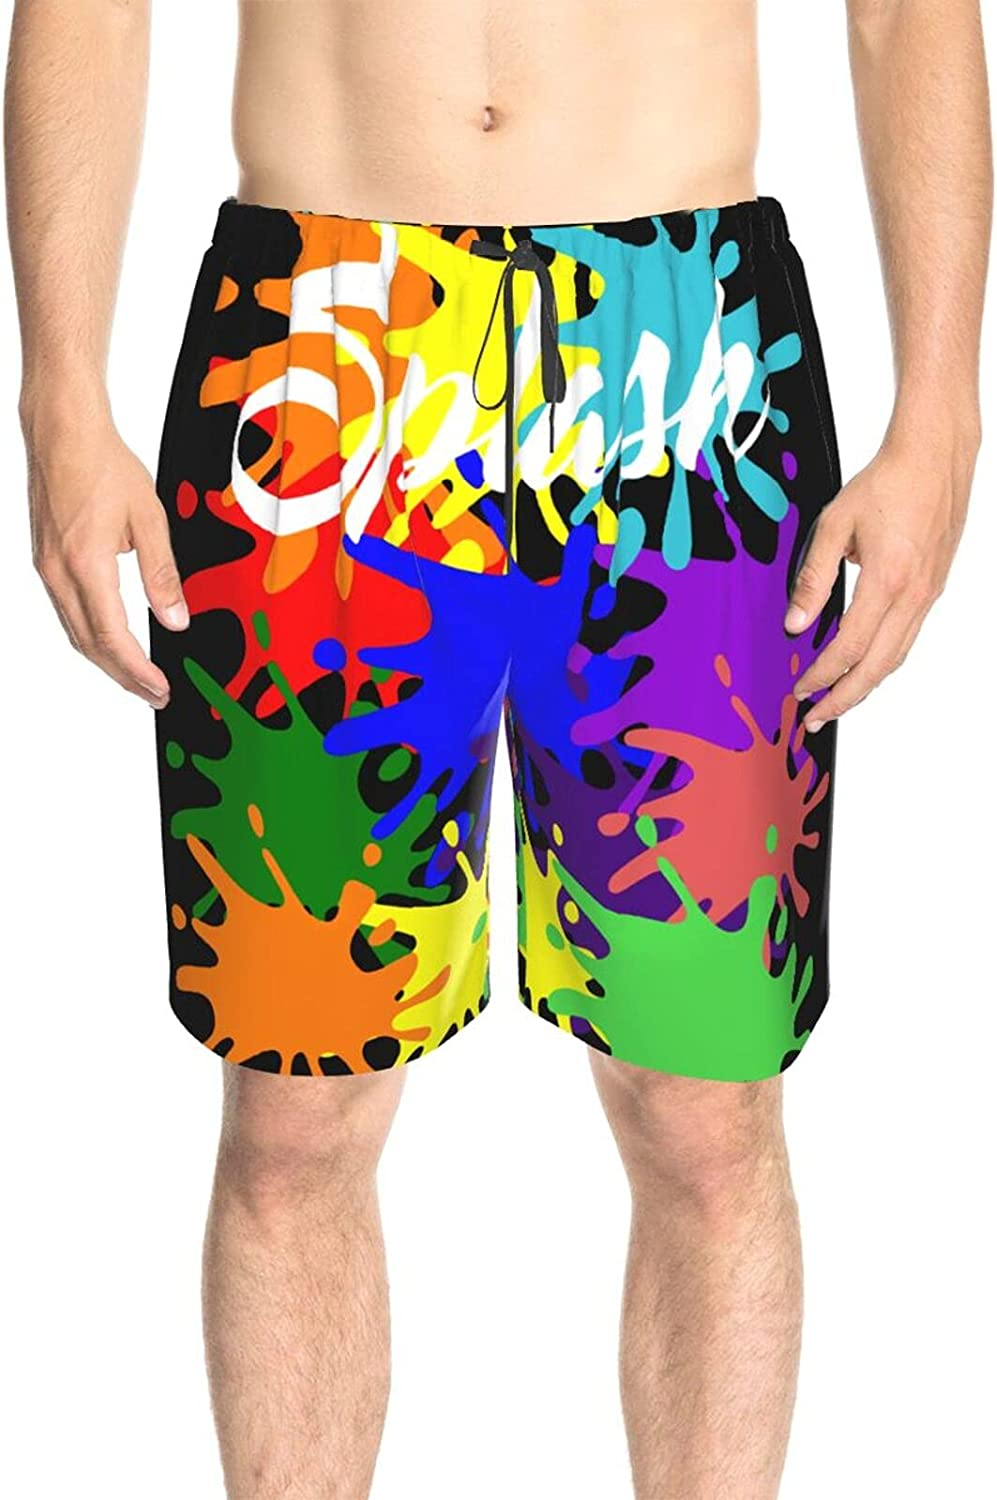 Mens Bathing Suits Colorful Graphic Splash Beach Board Shorts Quick Dry Comfy Swimwear Beach Shorts with Mesh Lining